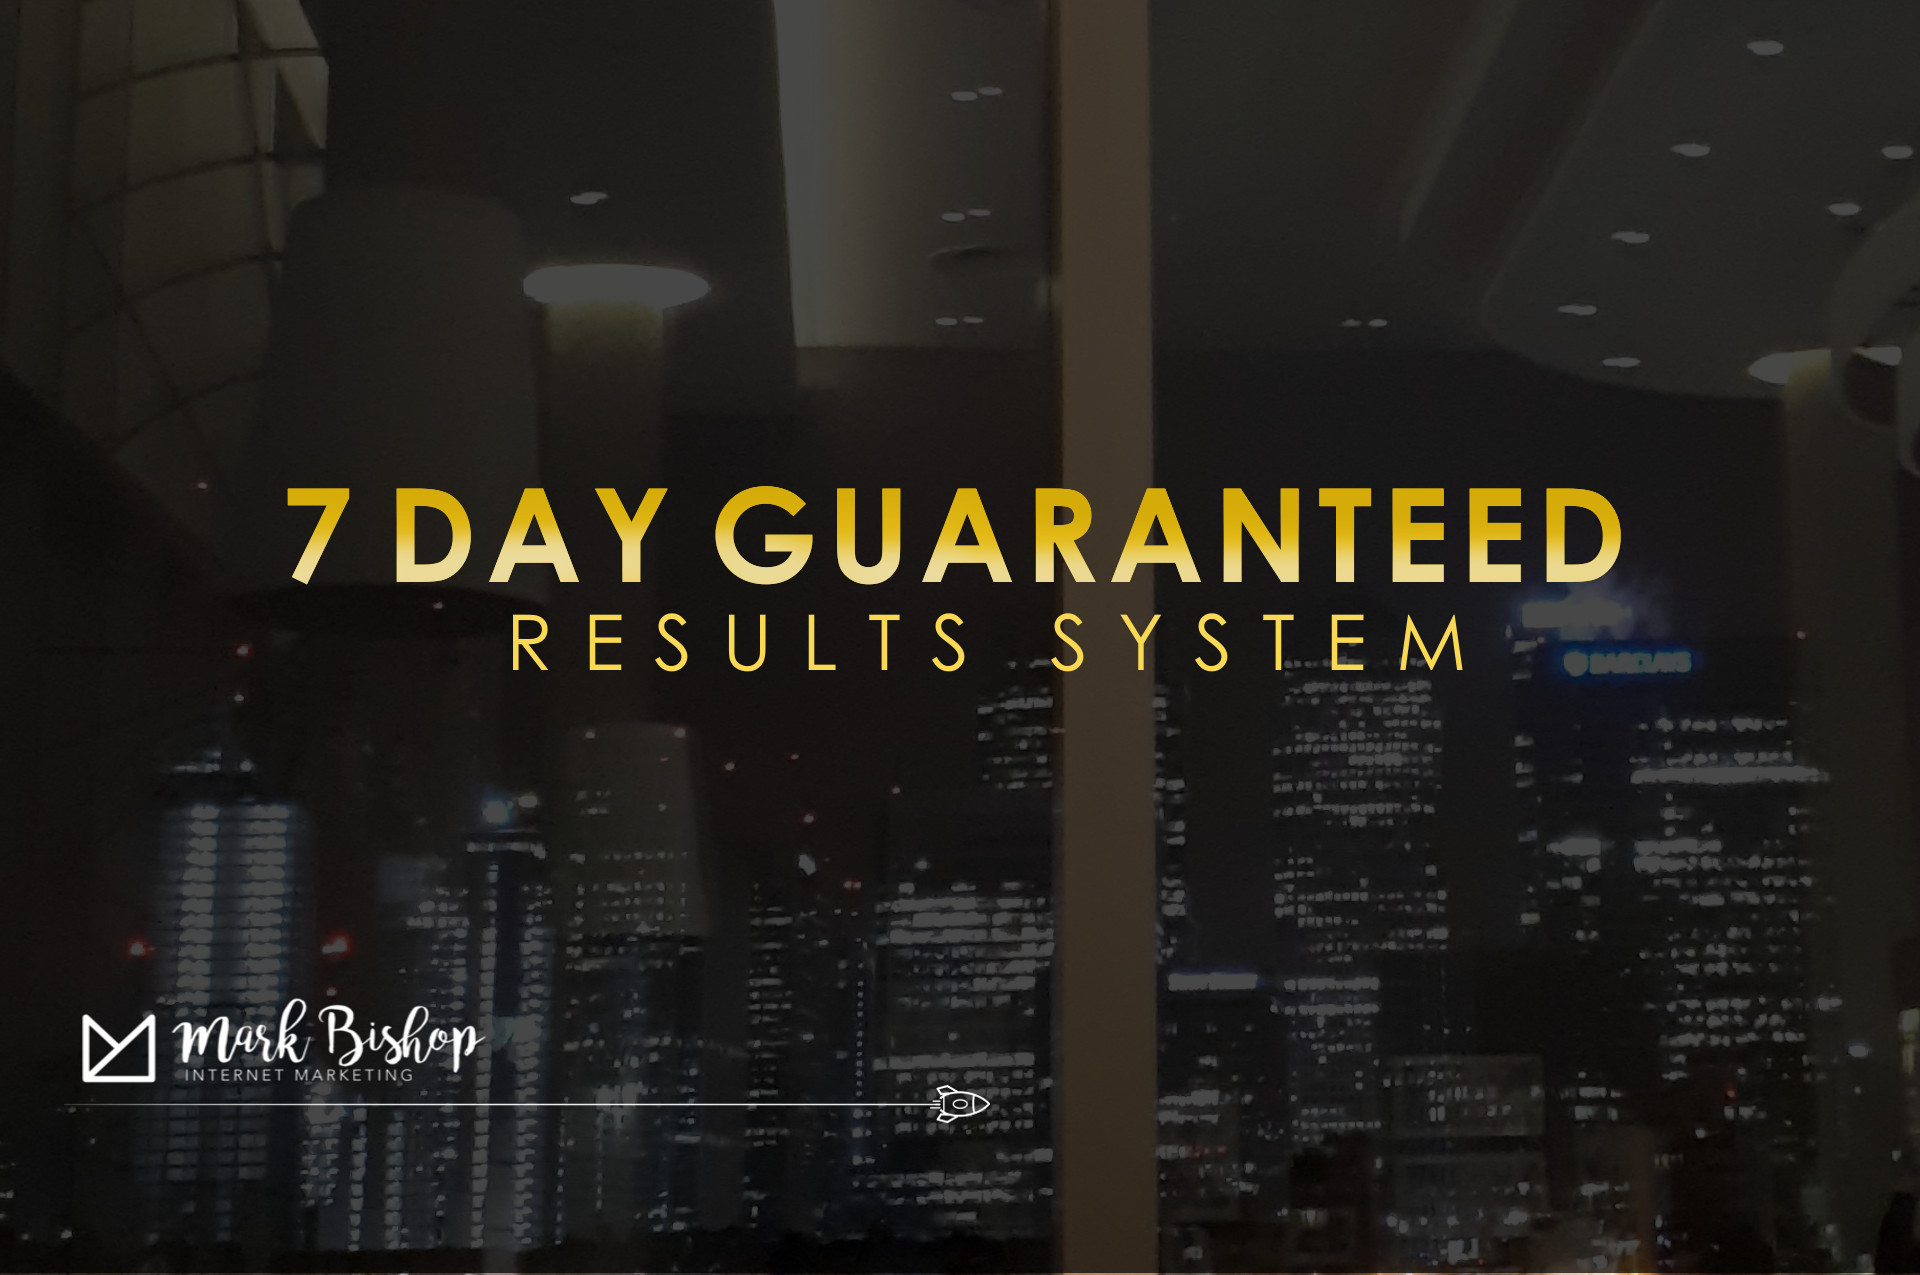 [GET] 7LRP2 – 7 Day Guaranteed Results System Download